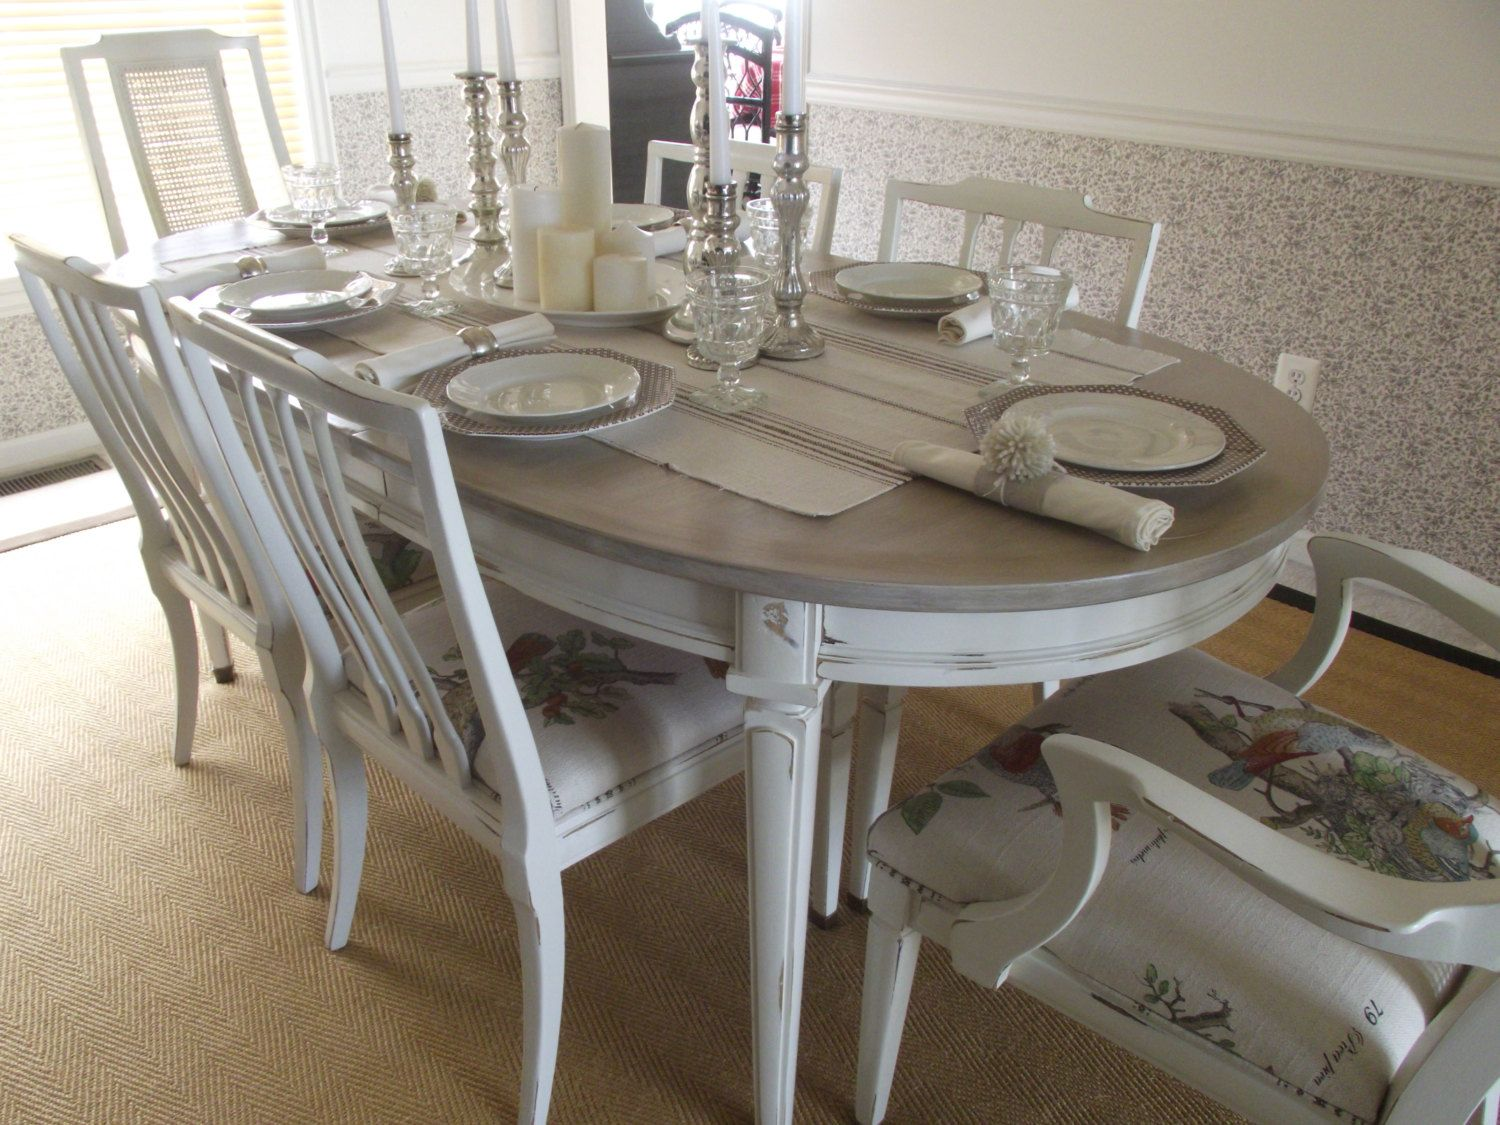 Vintage French Country Dining Table And Chairs By MeAndPhoebe 1 De